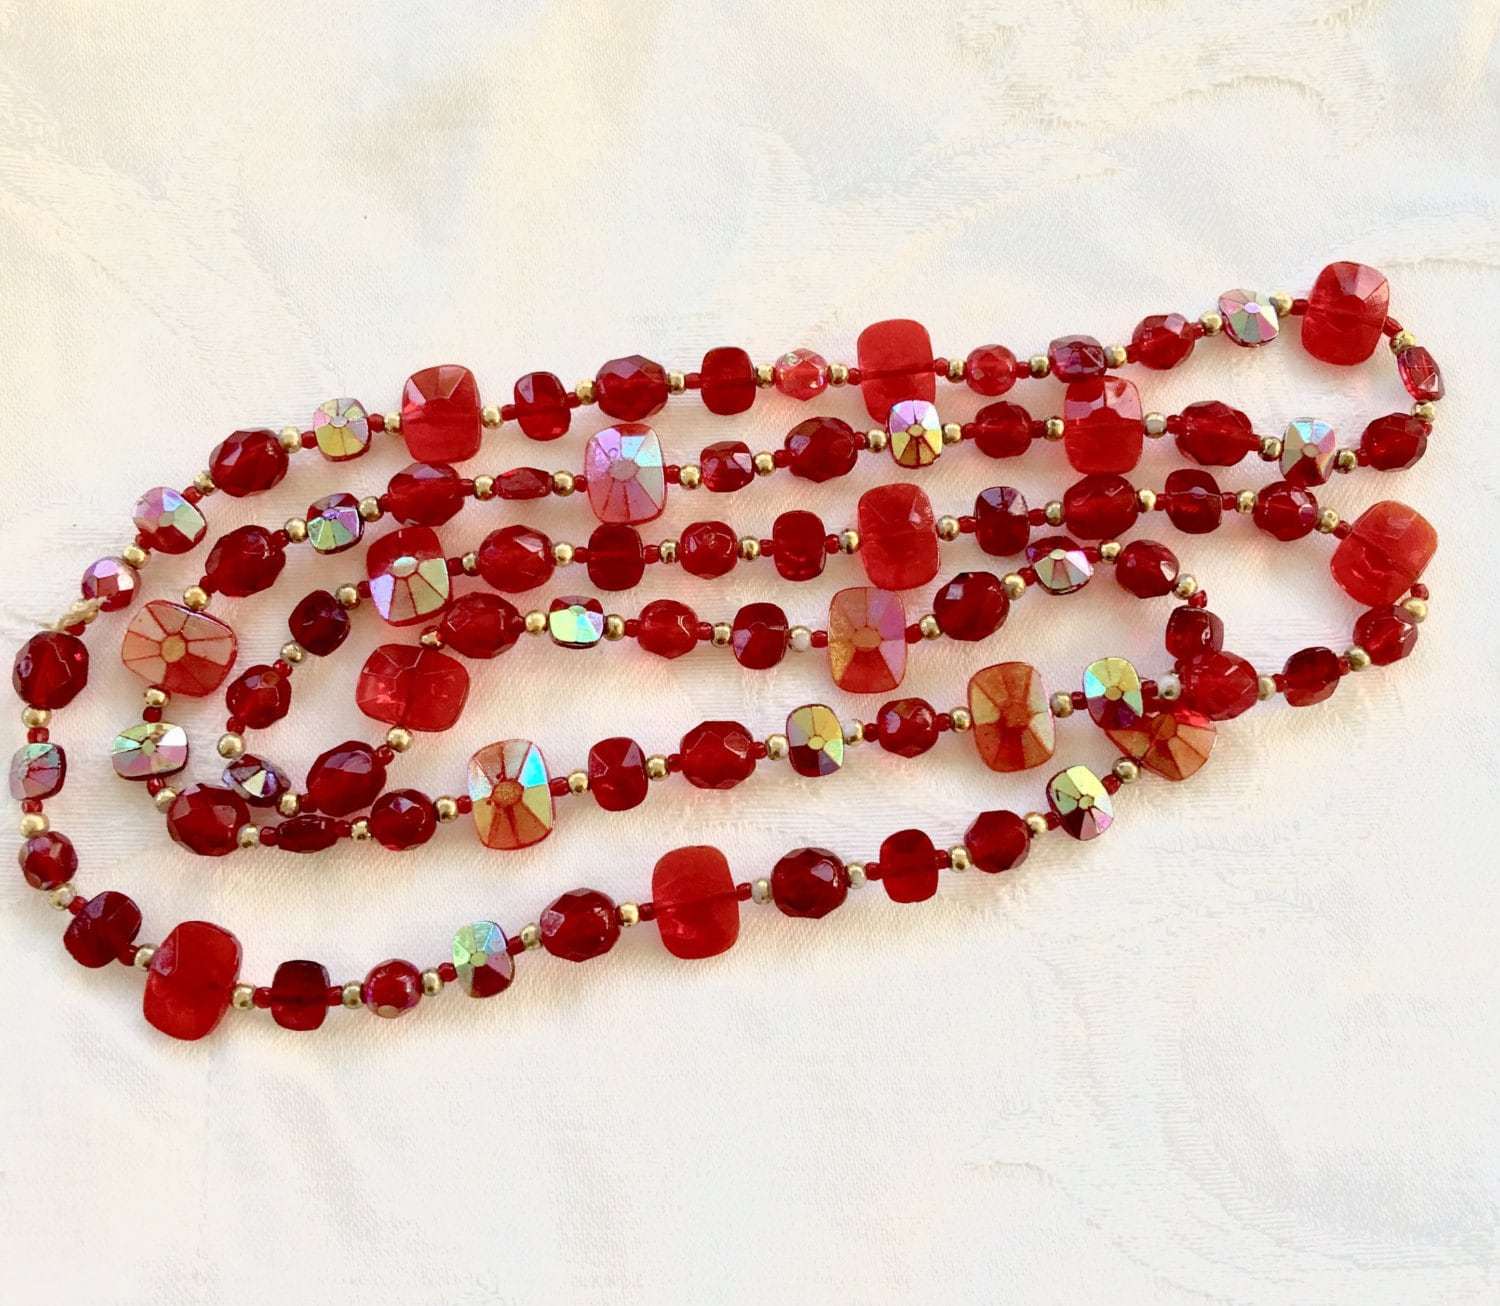 Red Ruby Beads: Vintage Glass Bead Necklace Red Clear And Iridized Ruby Red